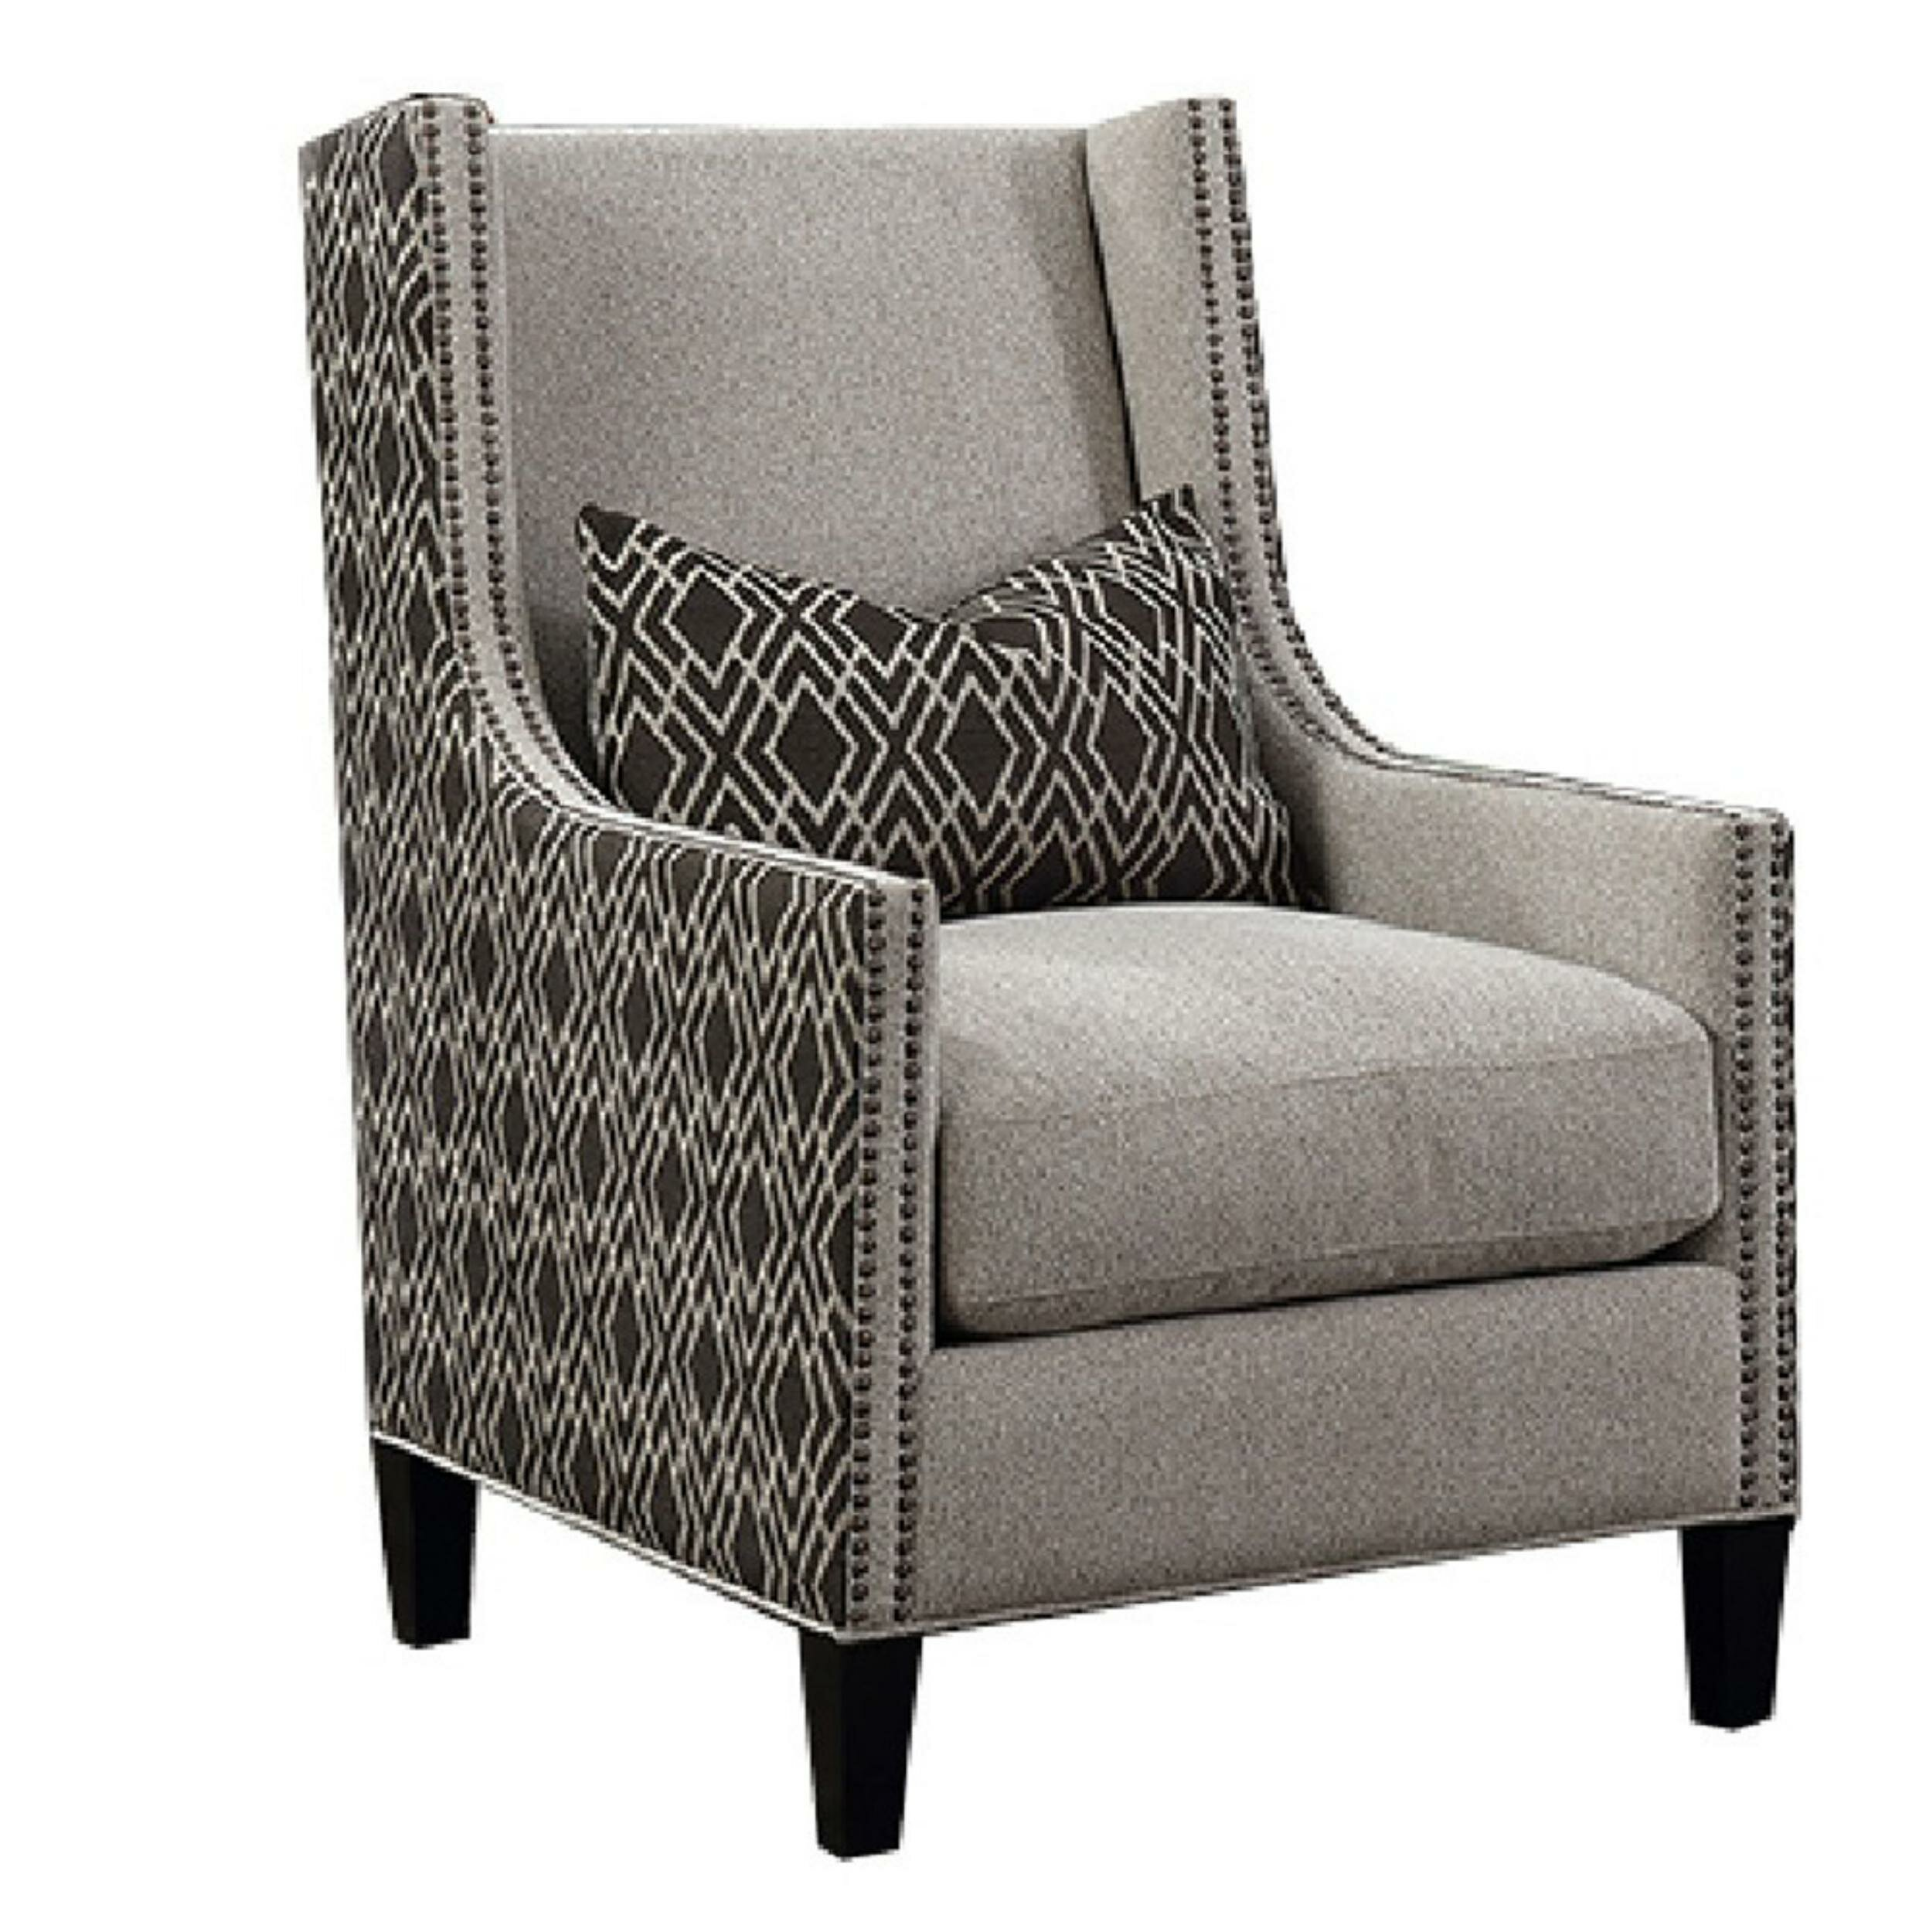 Terrific High Back Wing Accent Chair With Fabric Upholstery Grey And Black Onthecornerstone Fun Painted Chair Ideas Images Onthecornerstoneorg